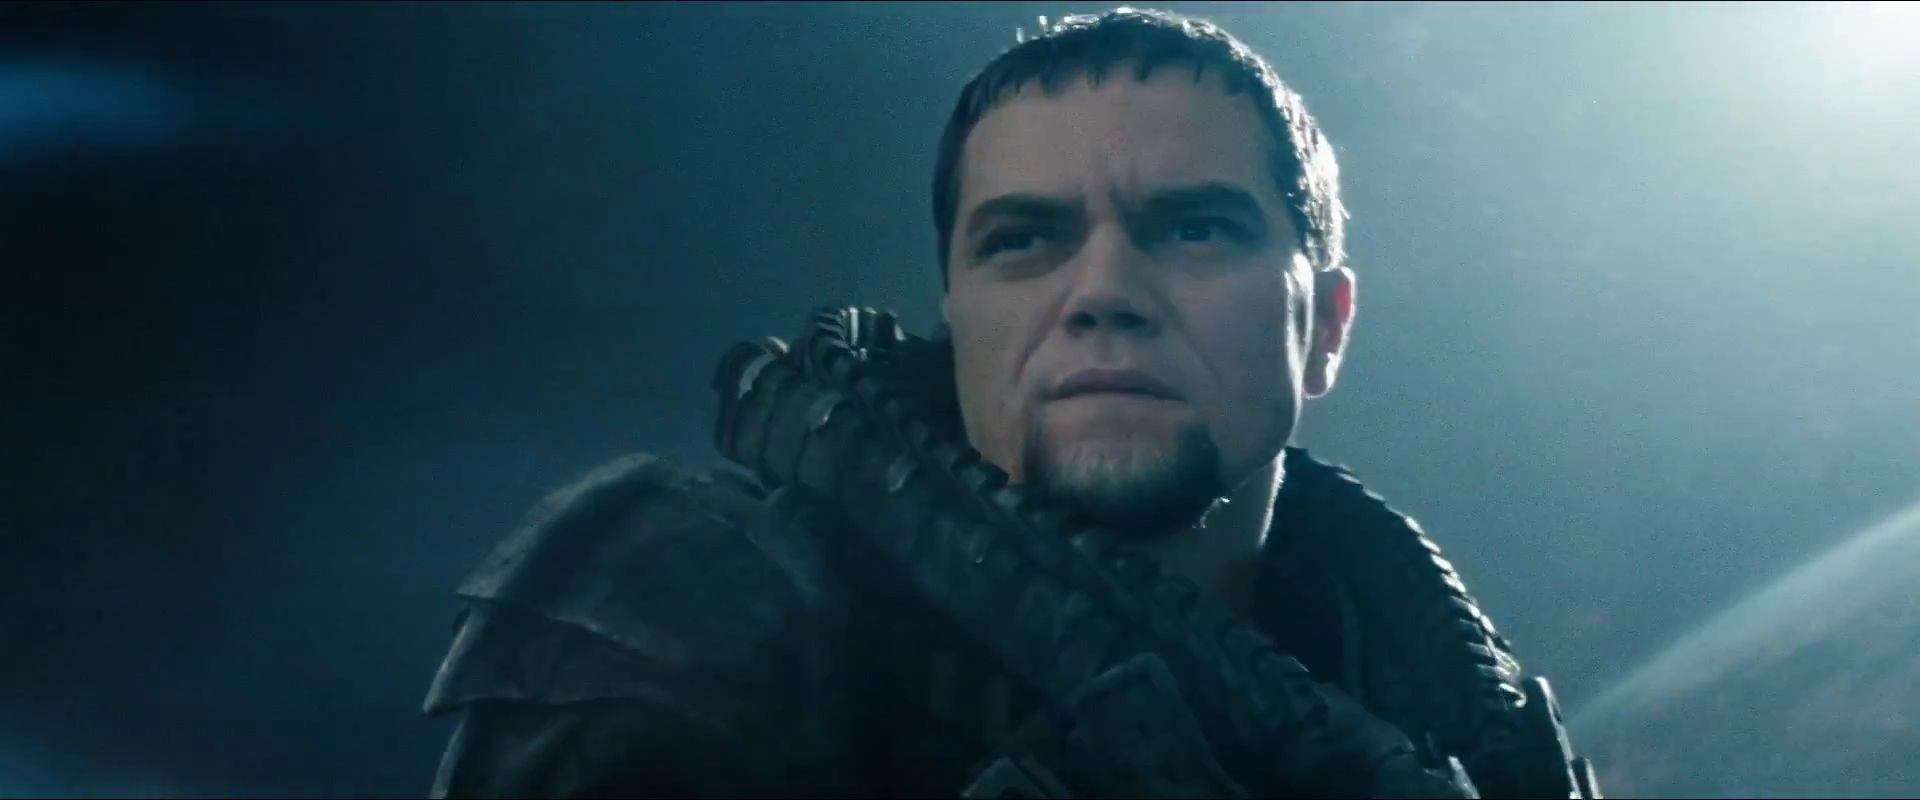 General_Zod_Man_Of_Steel